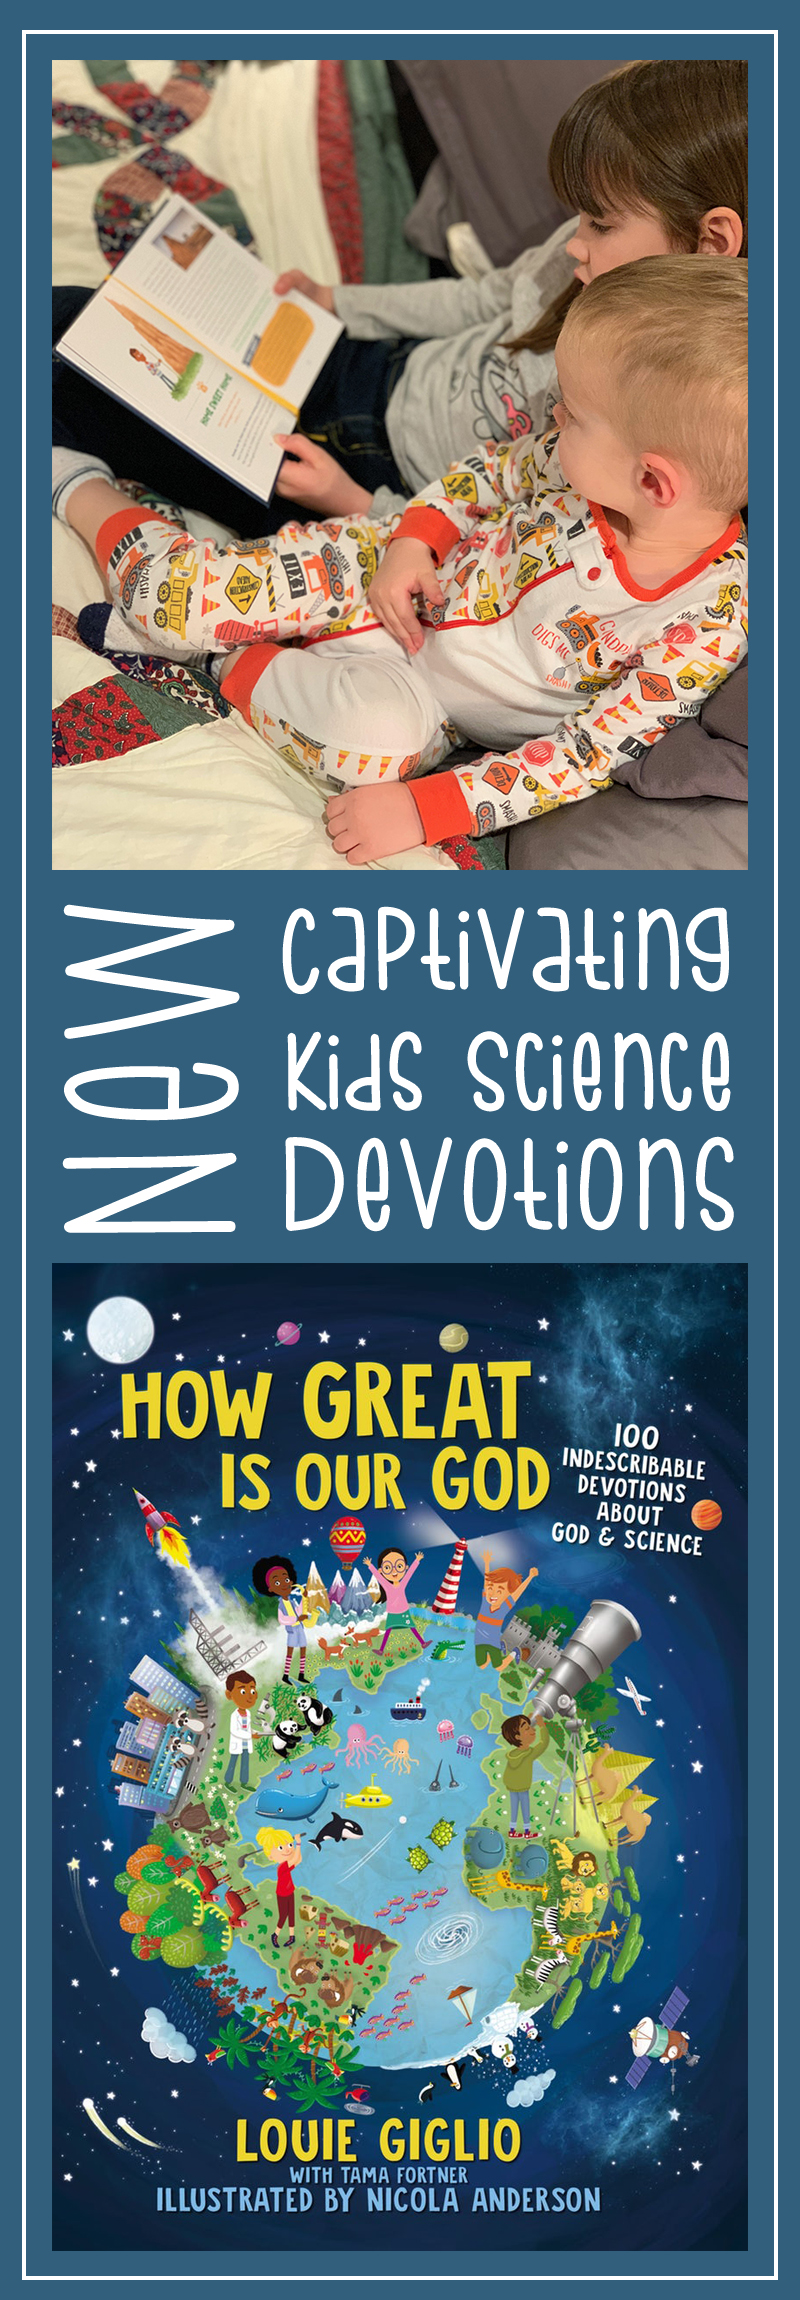 Kids Science Devotions by Louie Giglio